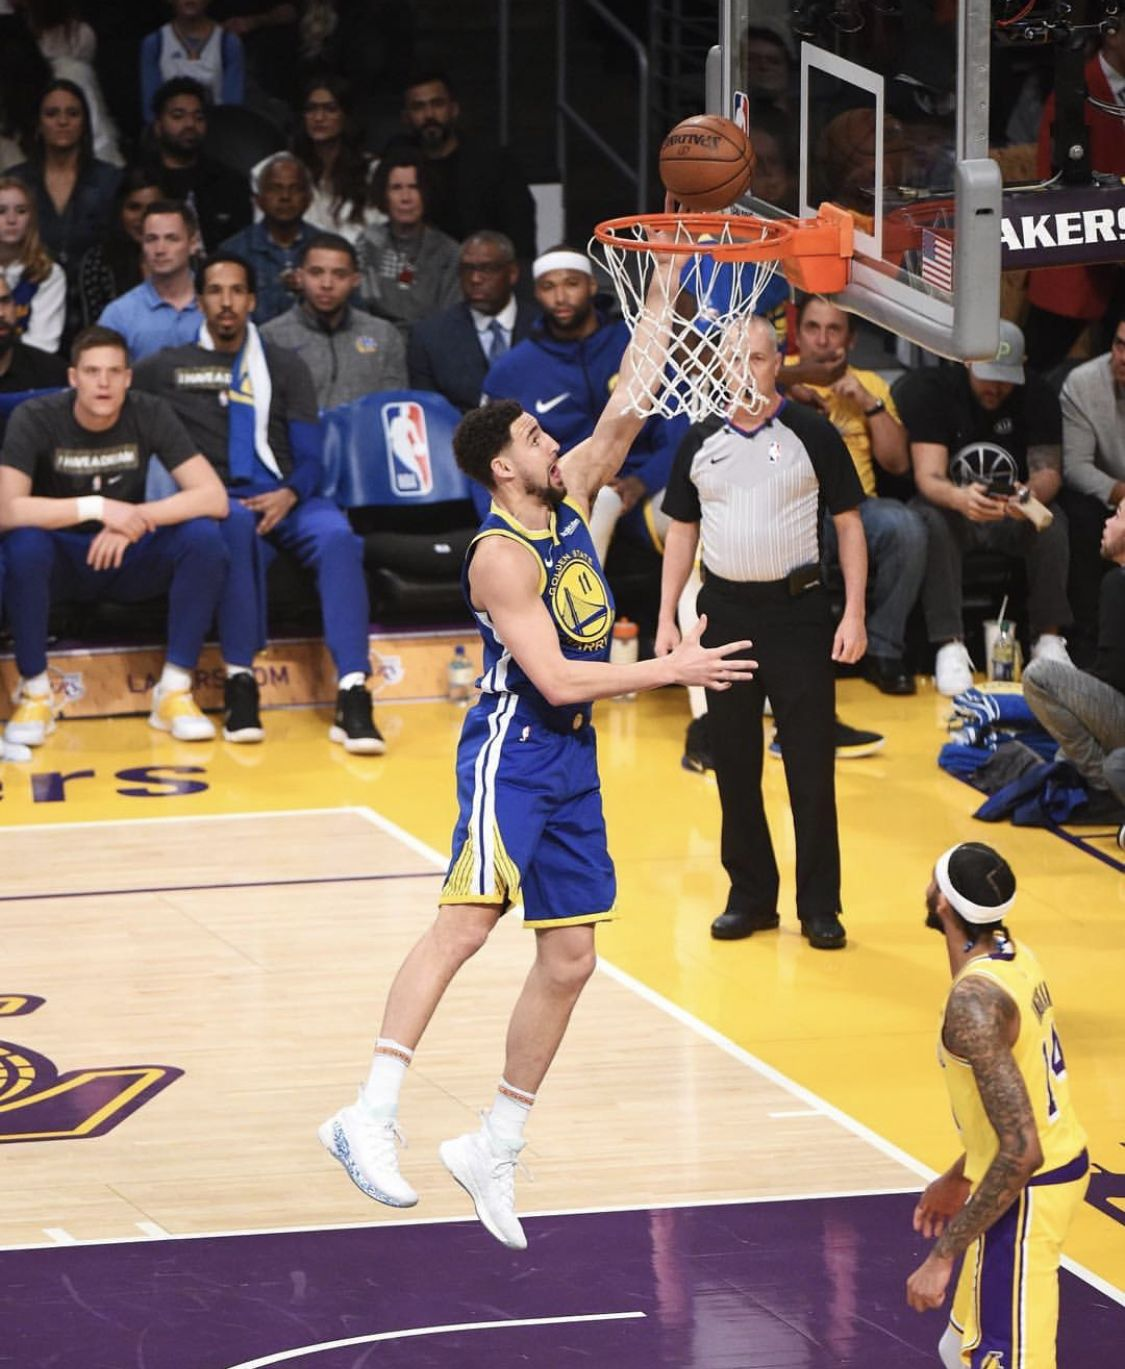 Los Angeles California 1 21 19 Klaythompson Showcased Another Outburst On Scoring 44 Points As He Became F Klay Thompson Nba Champions Basketball Skills